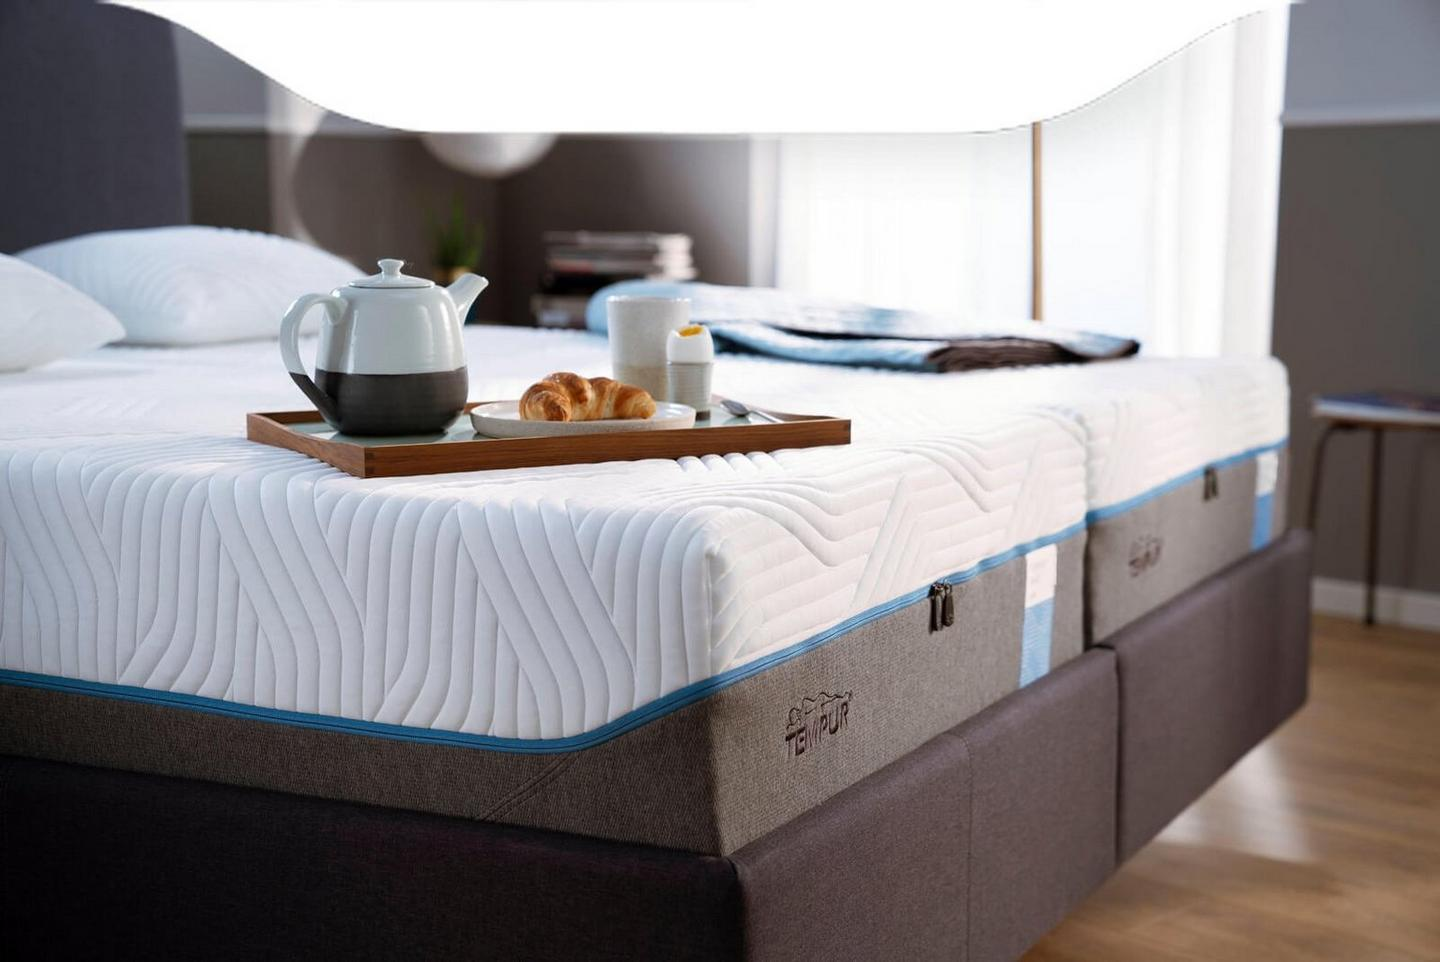 Tempur soft cloud mattress range